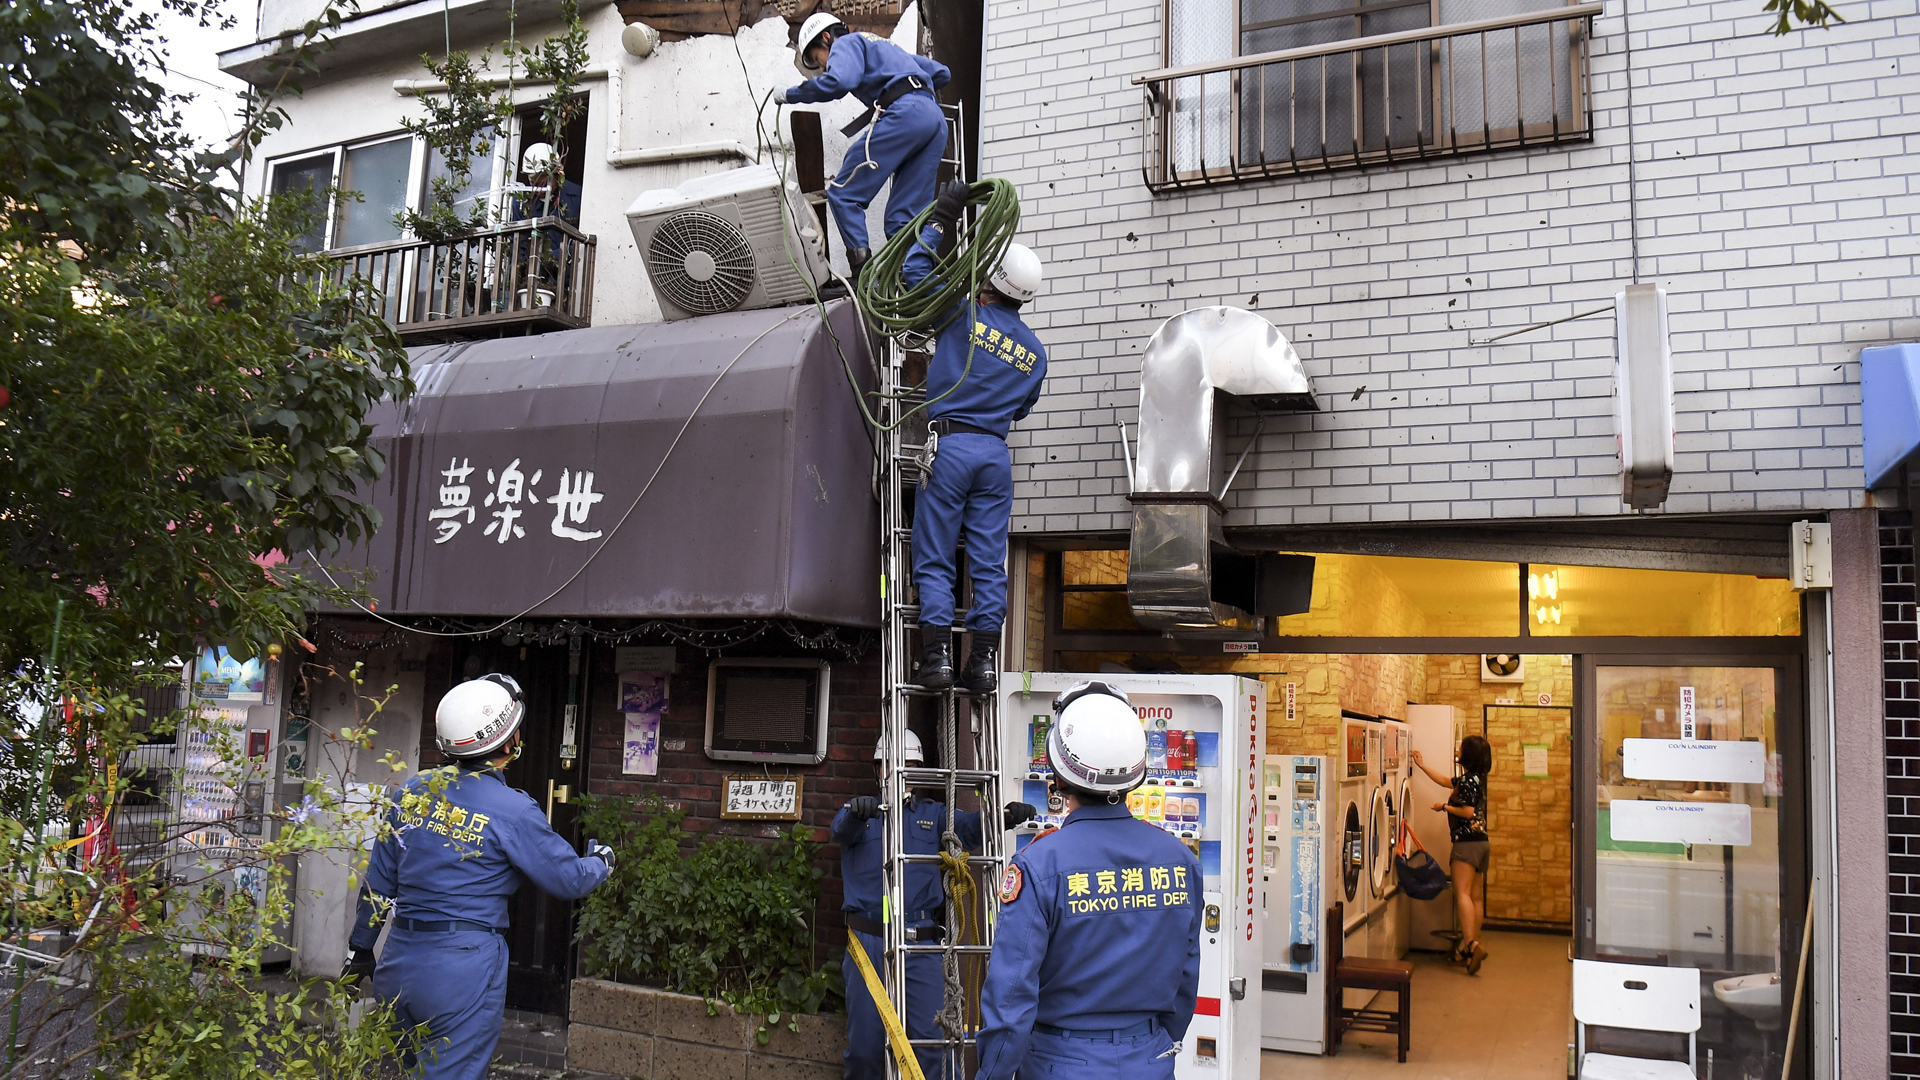 Tokyo Fire Department workers help repair damage in the aftermath of Typhoon Hagibis, as a woman (R) uses a laundry machine in a shop in Kawasaki on October 13, 2019. (Credit: William West/AFP/Getty Images)